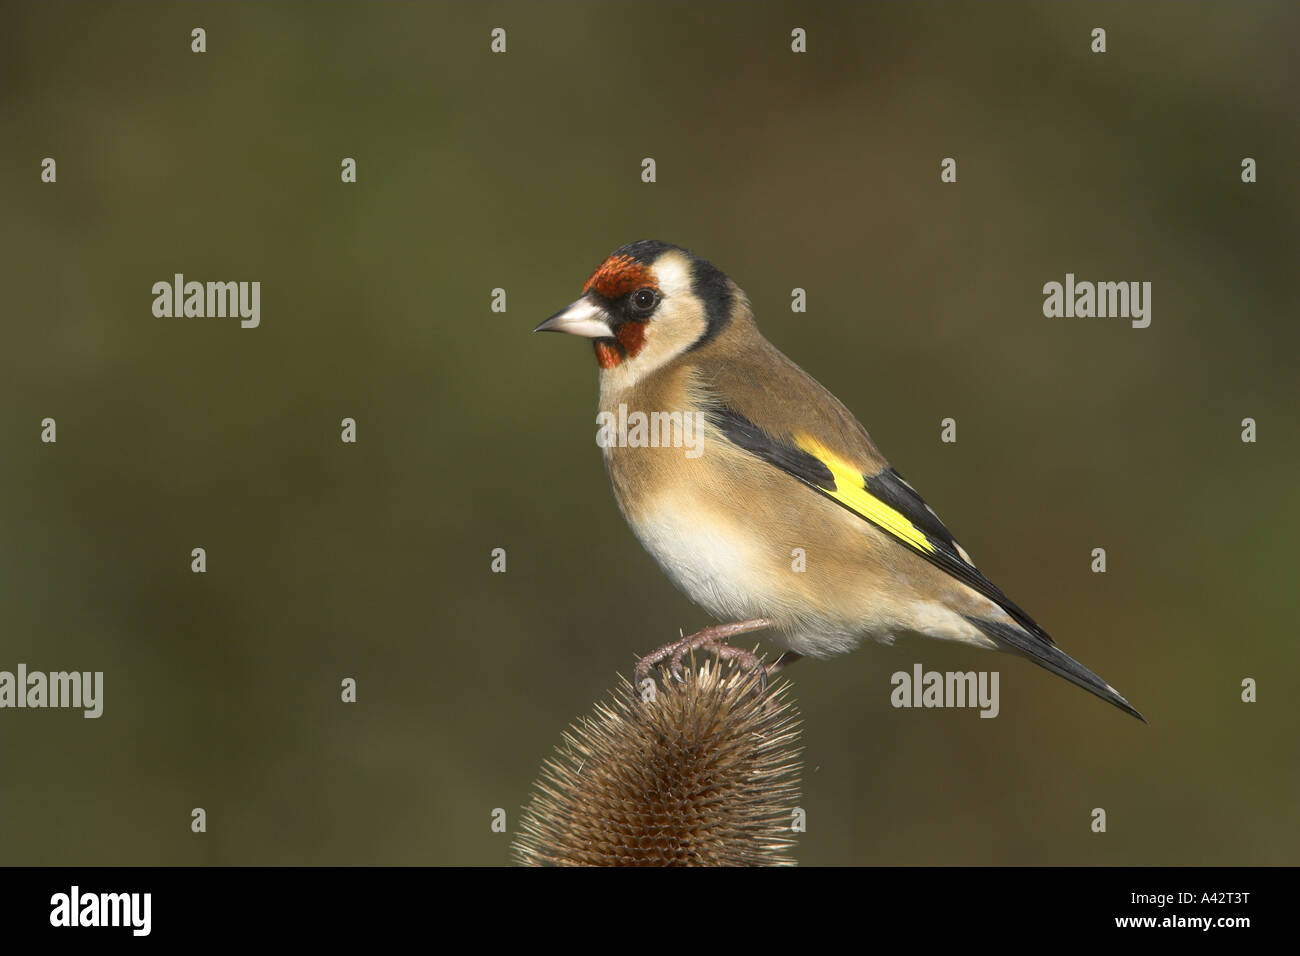 Eurasian Goldfinch Carduelis carduelis adult male perched on a Teasal seedhead, Todwick, South Yorkshire, England. - Stock Image